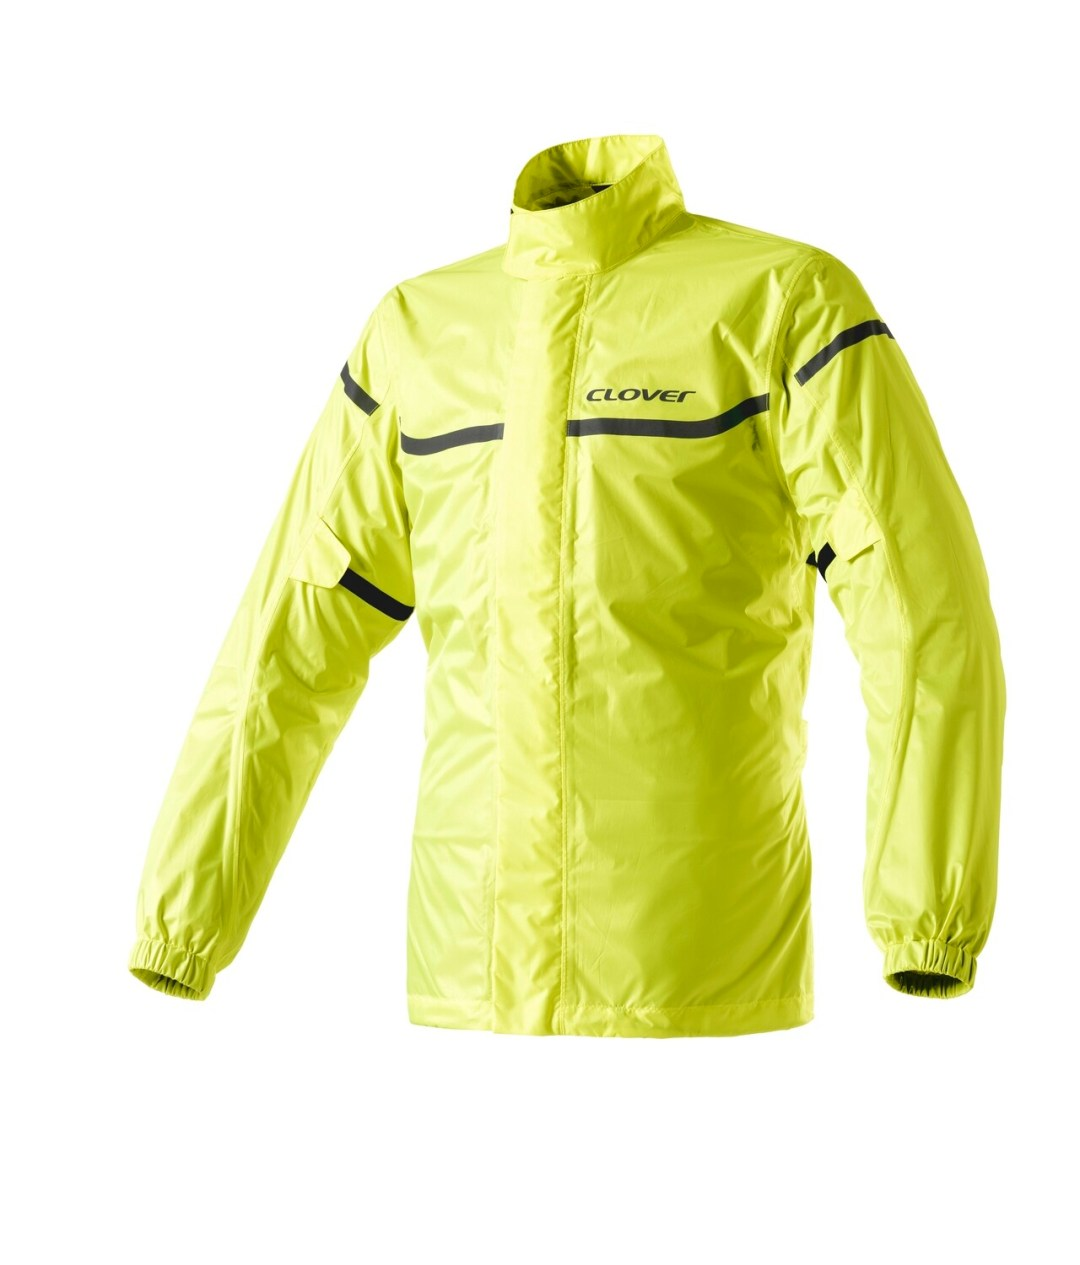 Antipioggia GIACCA CLOVER WET-JACKET PRO col. FLUO